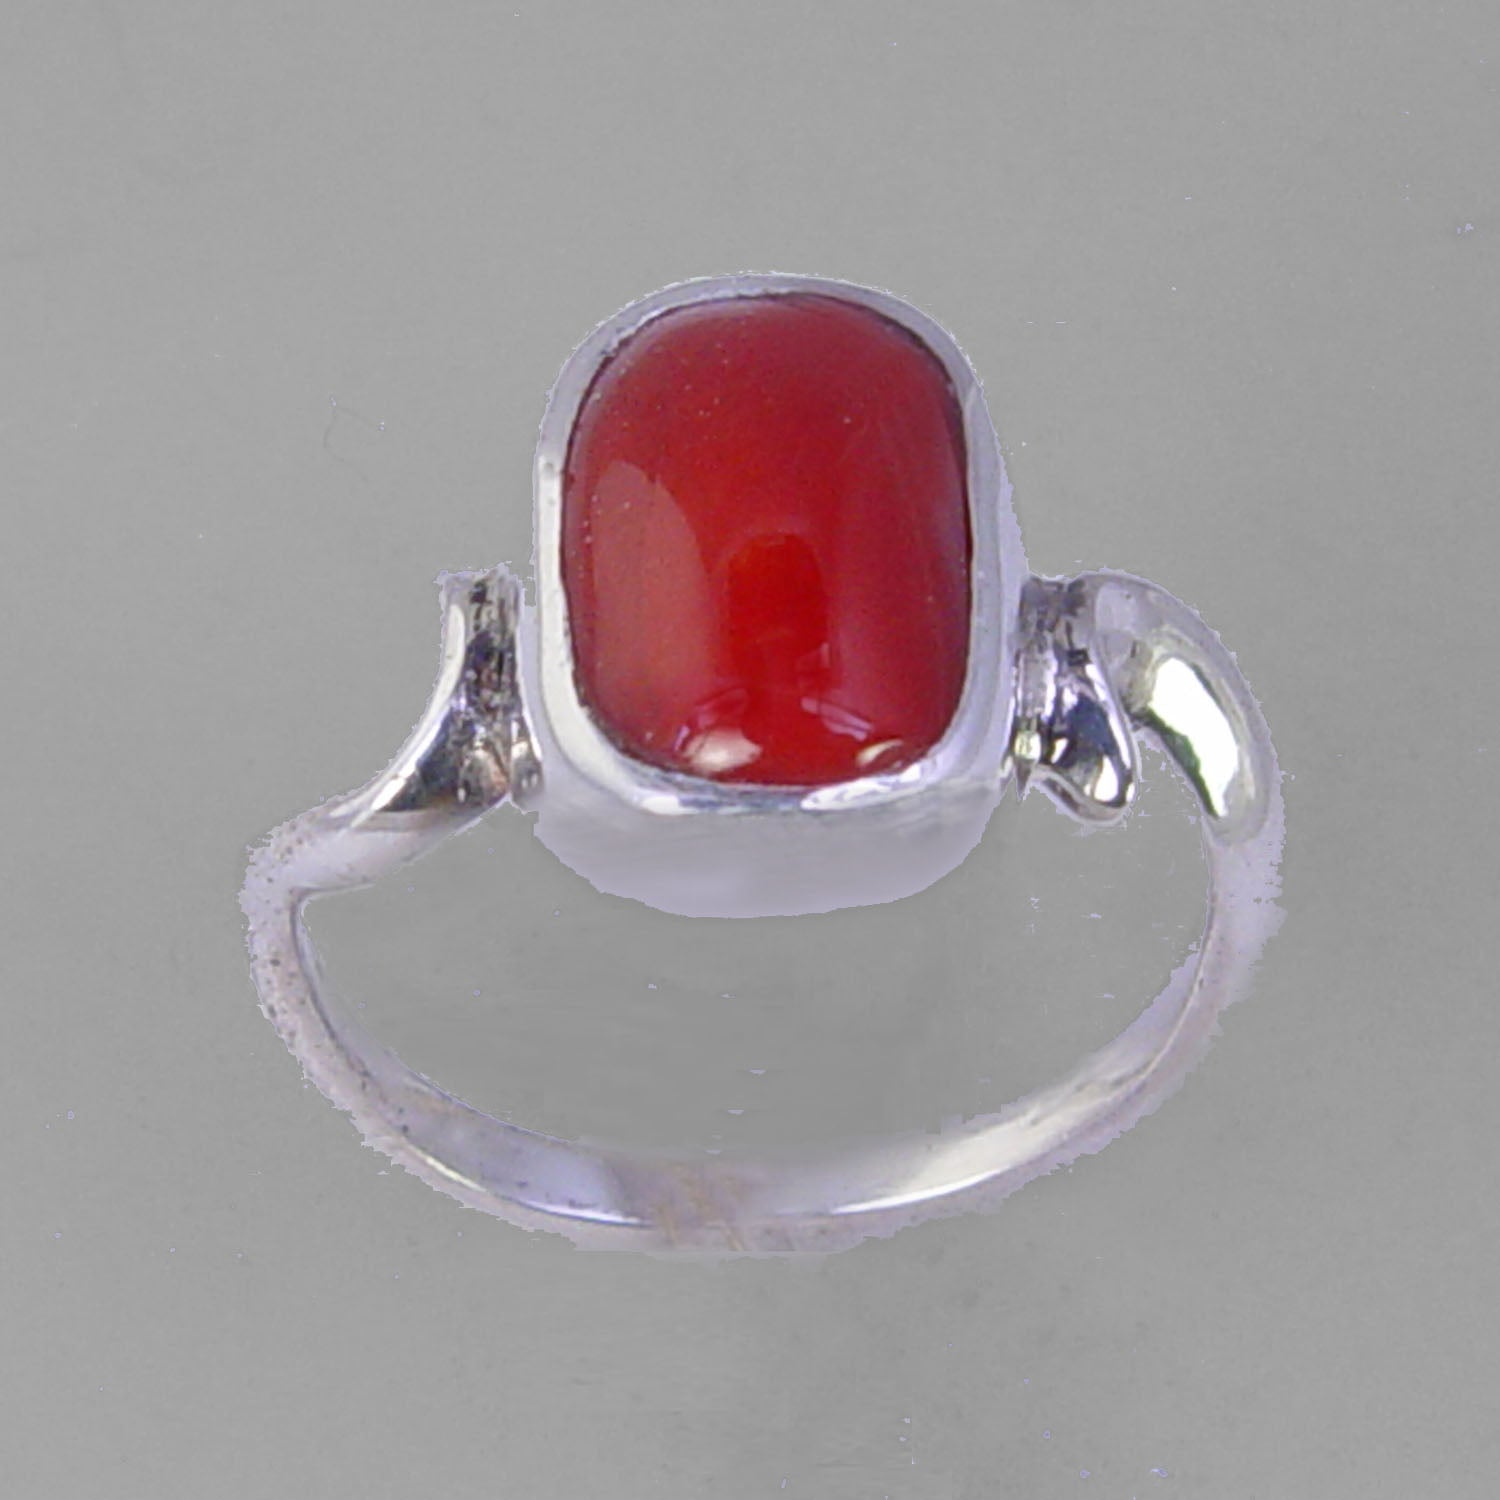 Red Coral 4.7 ct Cab Bezel Set Sterling Silver Ring, Size 6